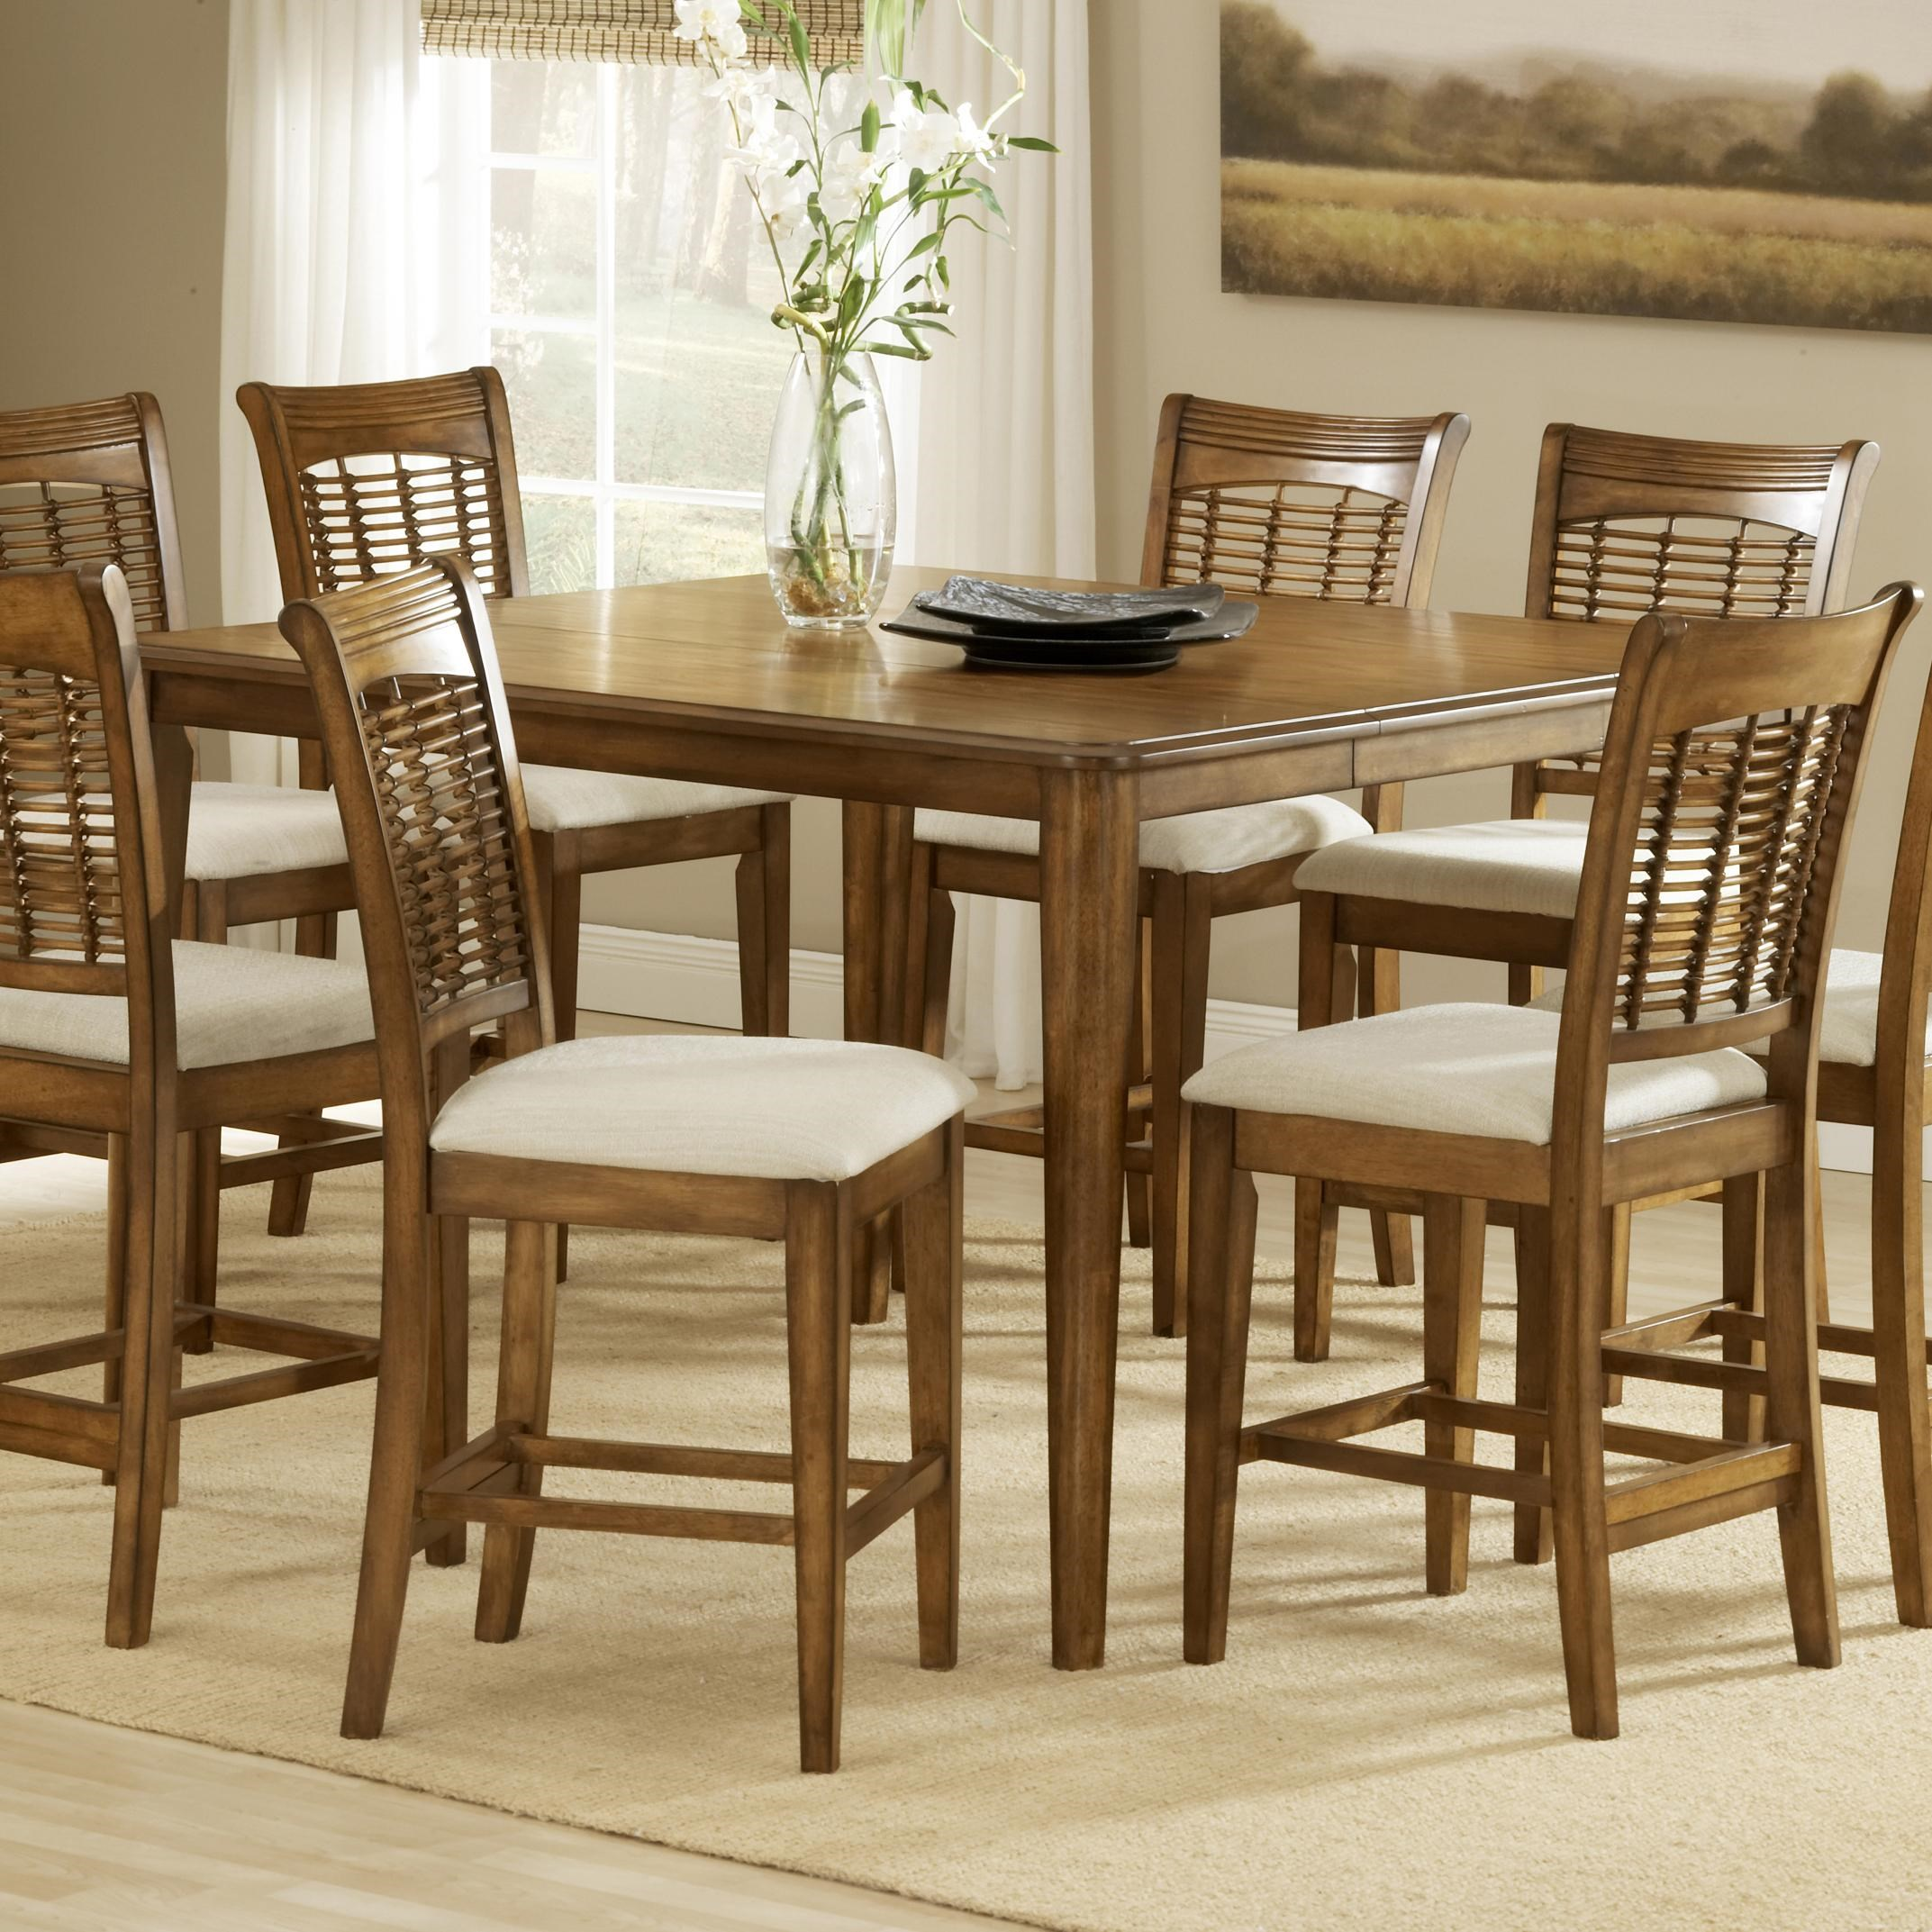 Hillsdale Bayberry and GlenmaryCounter Height Gathering Table ...  sc 1 st  Dunk \u0026 Bright Furniture & Hillsdale Bayberry and Glenmary 4766-835 Counter Height Gathering ...